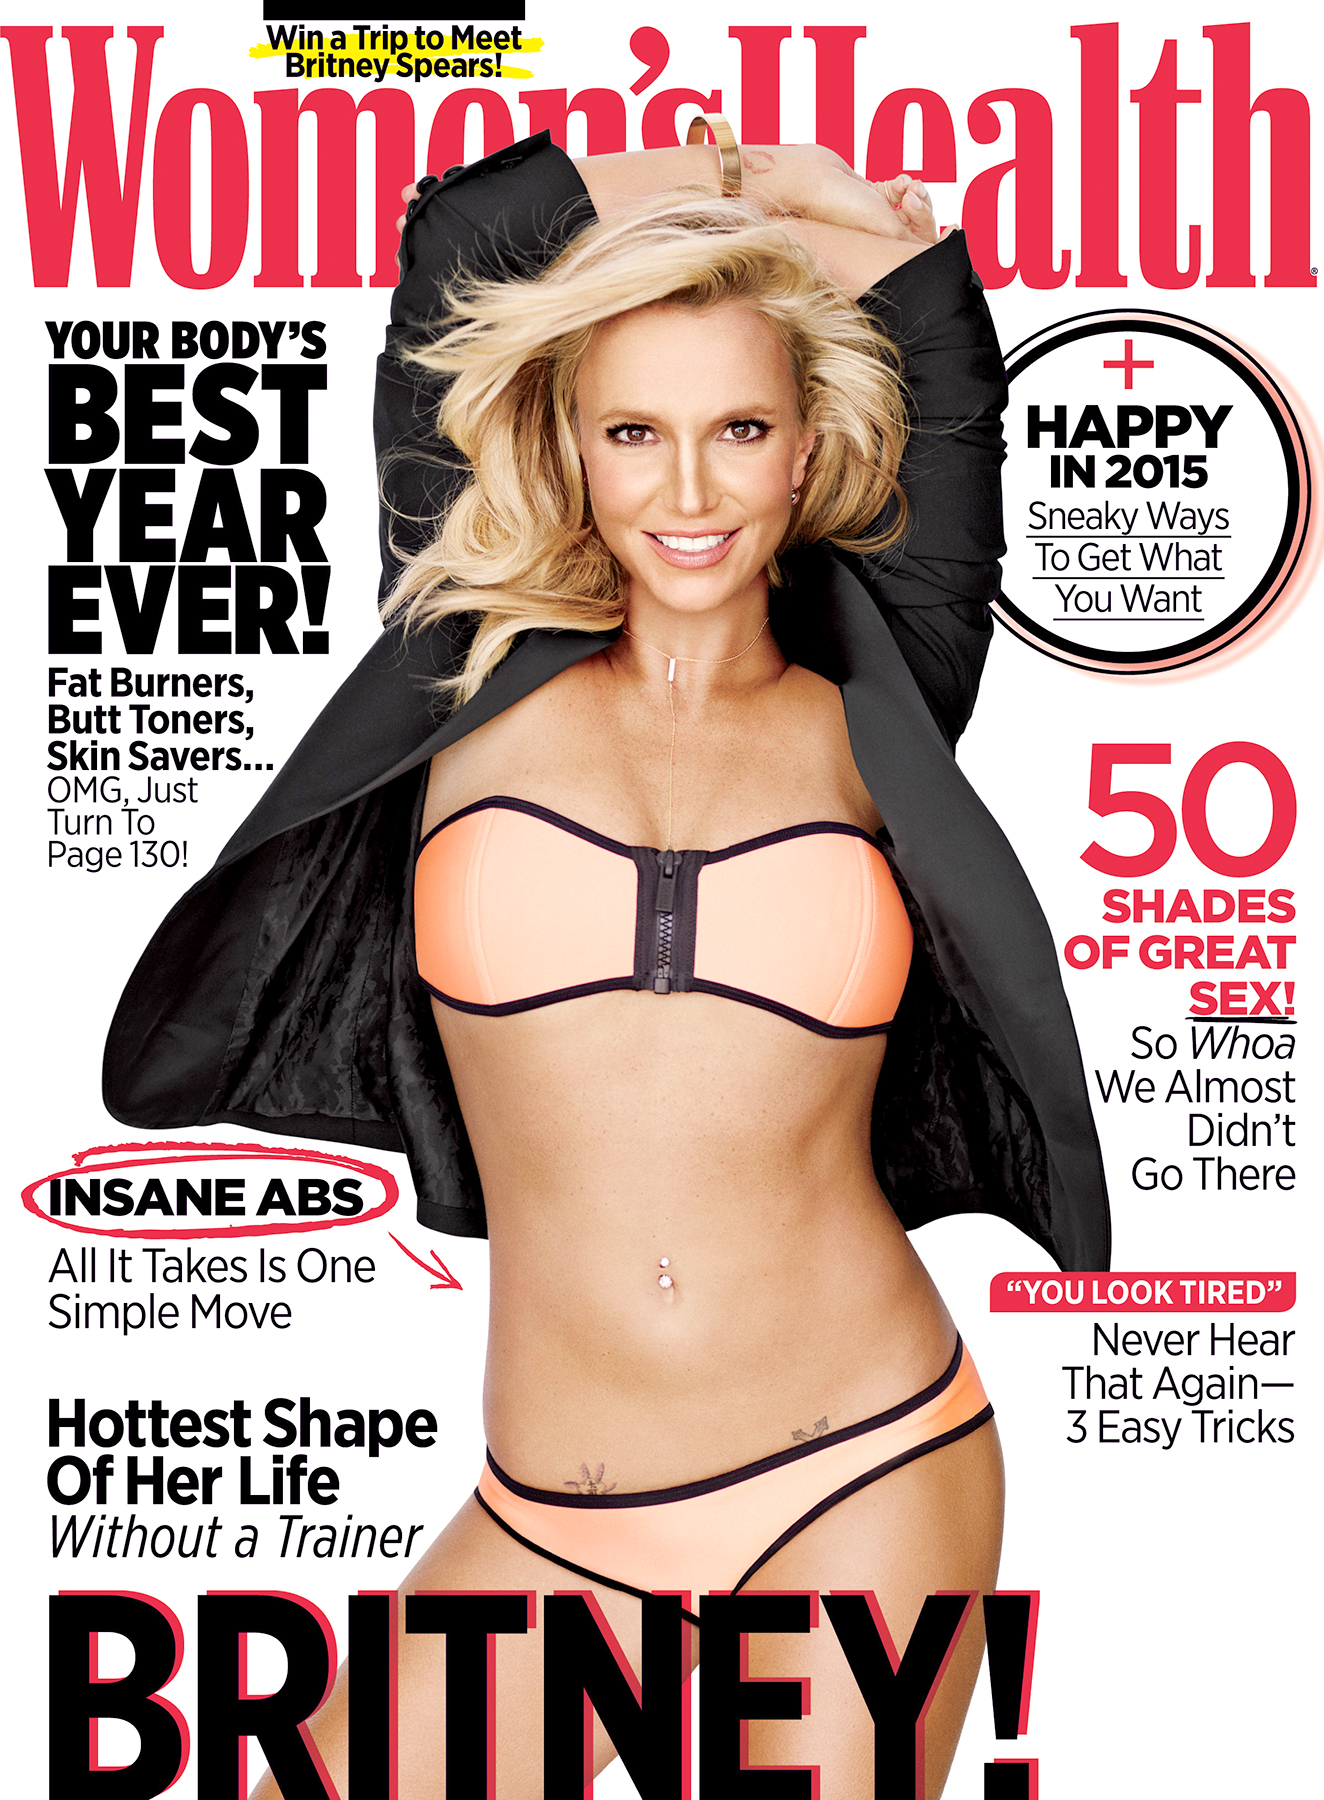 1418769223_britney-spears-womens-health-cover-zoom.jpg